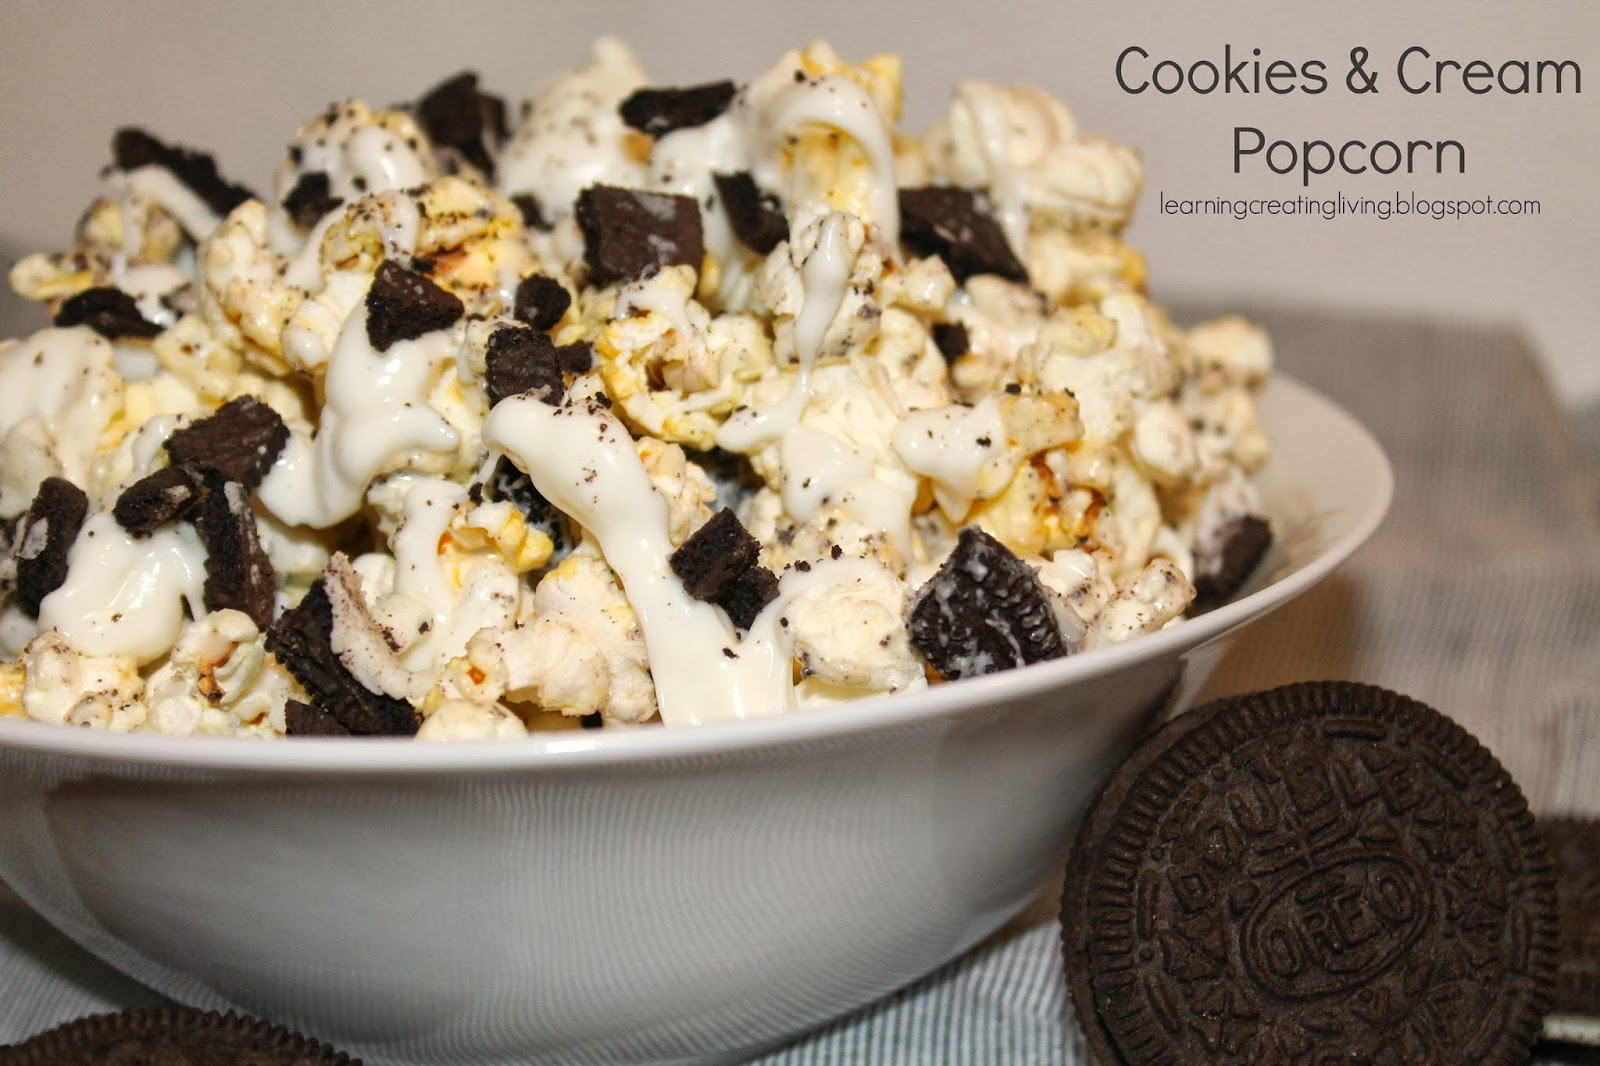 Learning, Creating, Living.: Cookies & Cream Popcorn